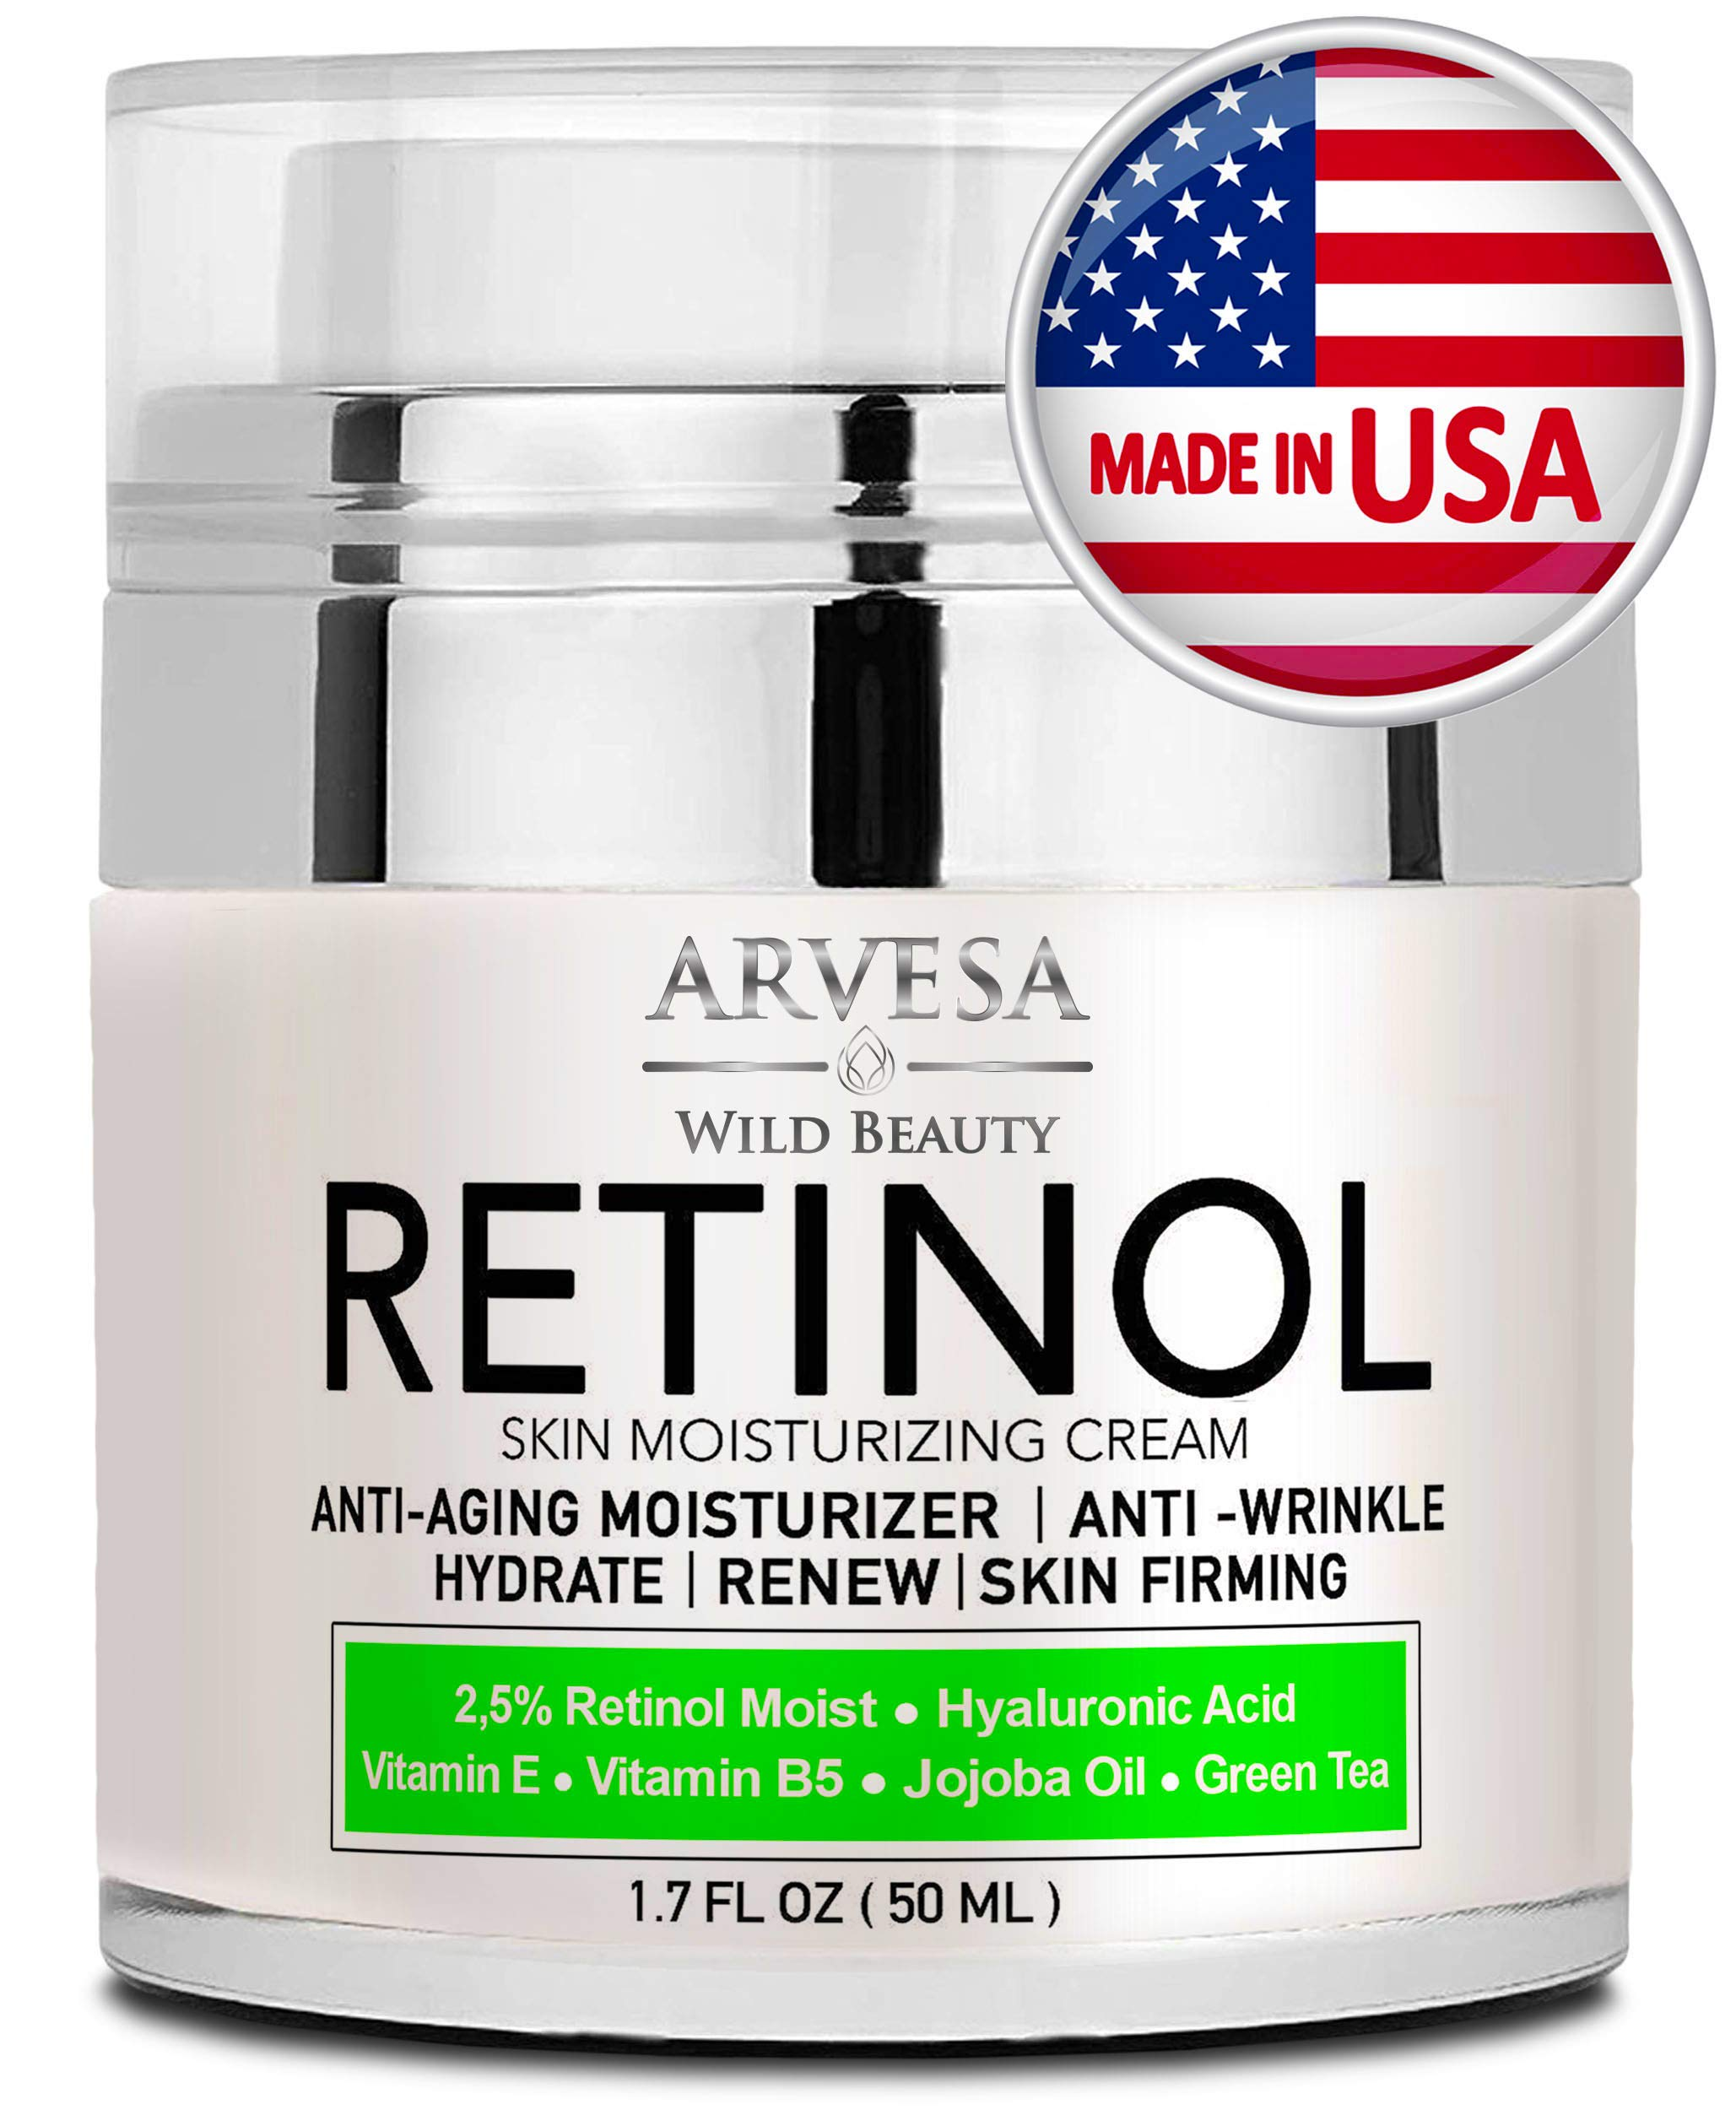 Natural Retinol Moisturizer Cream for Face and Eye Area - Made in USA - with Hyaluronic Acid - Active Retinol 2.5% - Anti Aging Face Cream to Reduce Wrinkles & Fine Lines - Best Day and Night by Arvesa